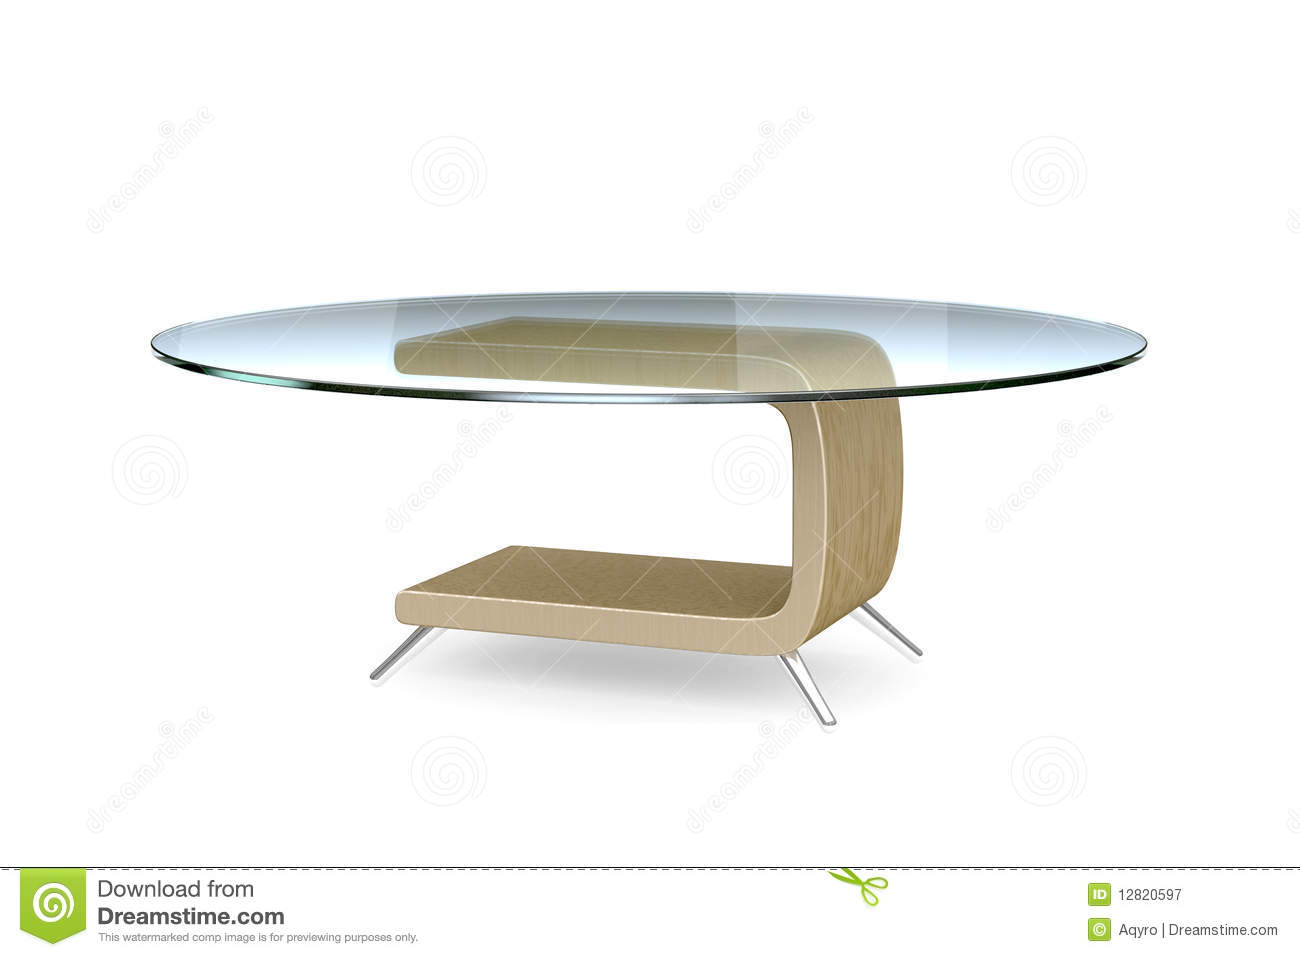 Modern Table 3d Model Royalty Free Stock Photography  : modern table 3d model 12820597 from www.dreamstime.com size 1300 x 957 jpeg 53kB